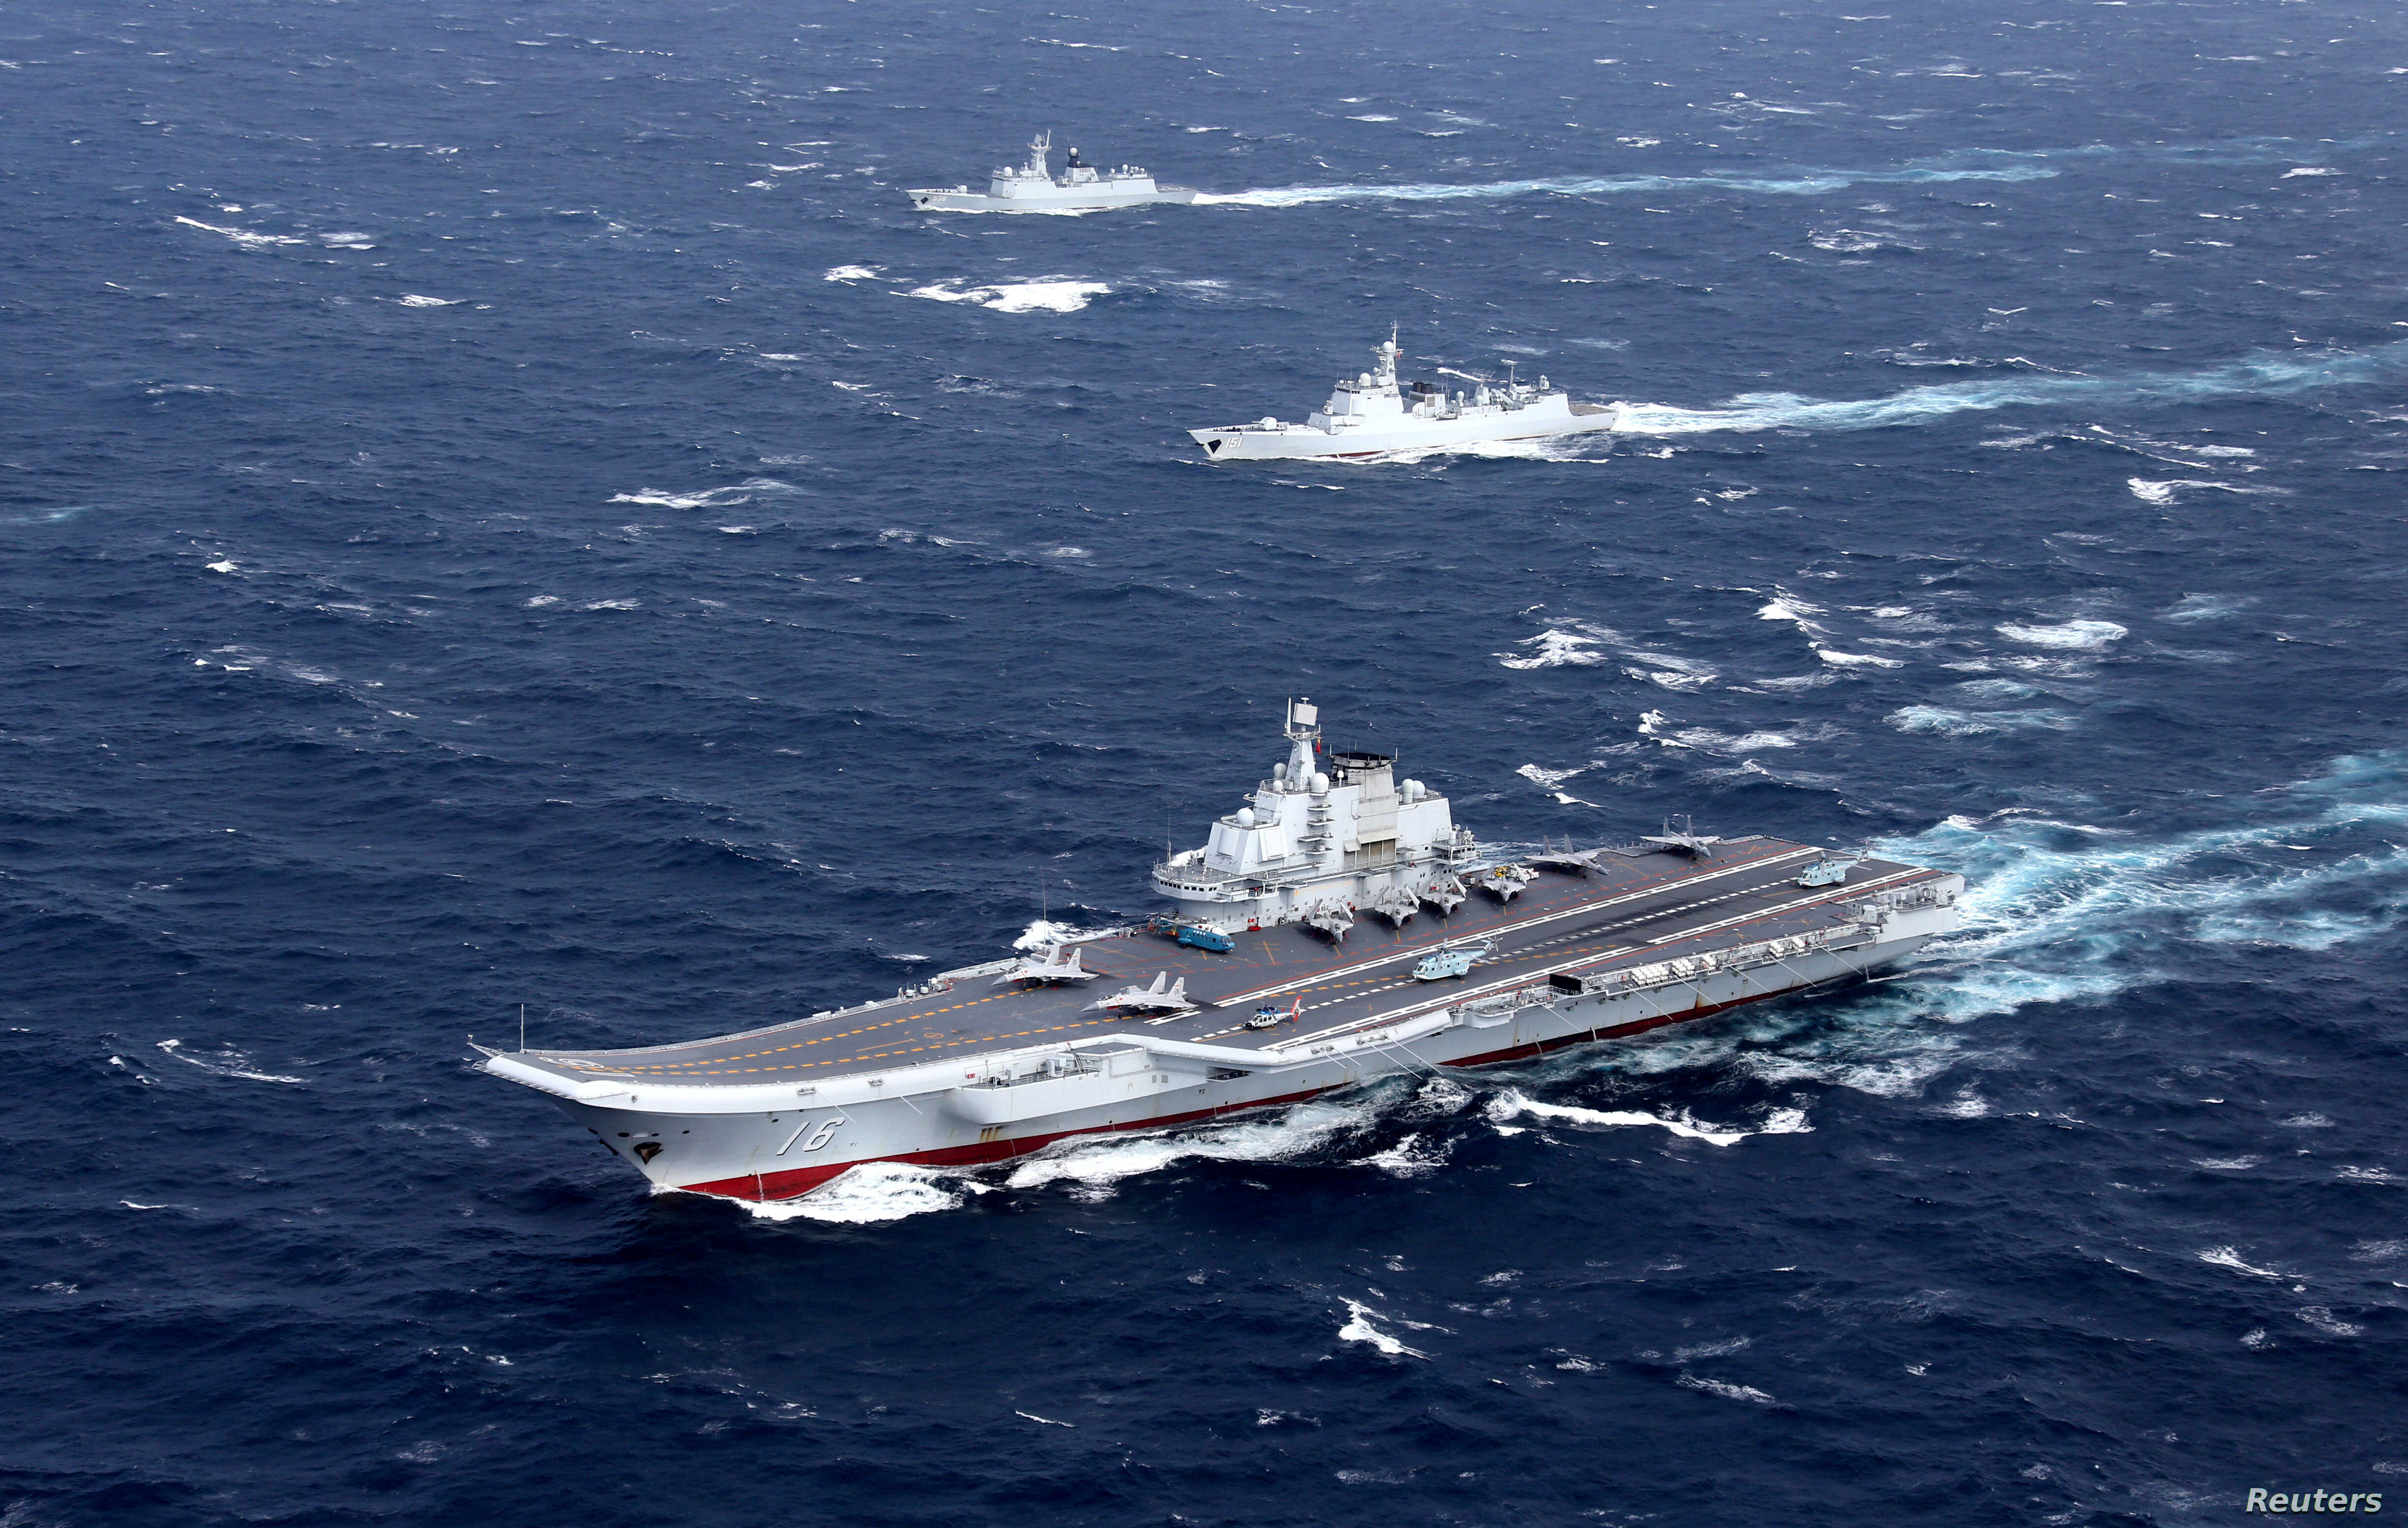 Analysts: China Misses Facts in Chiding US Over Contested